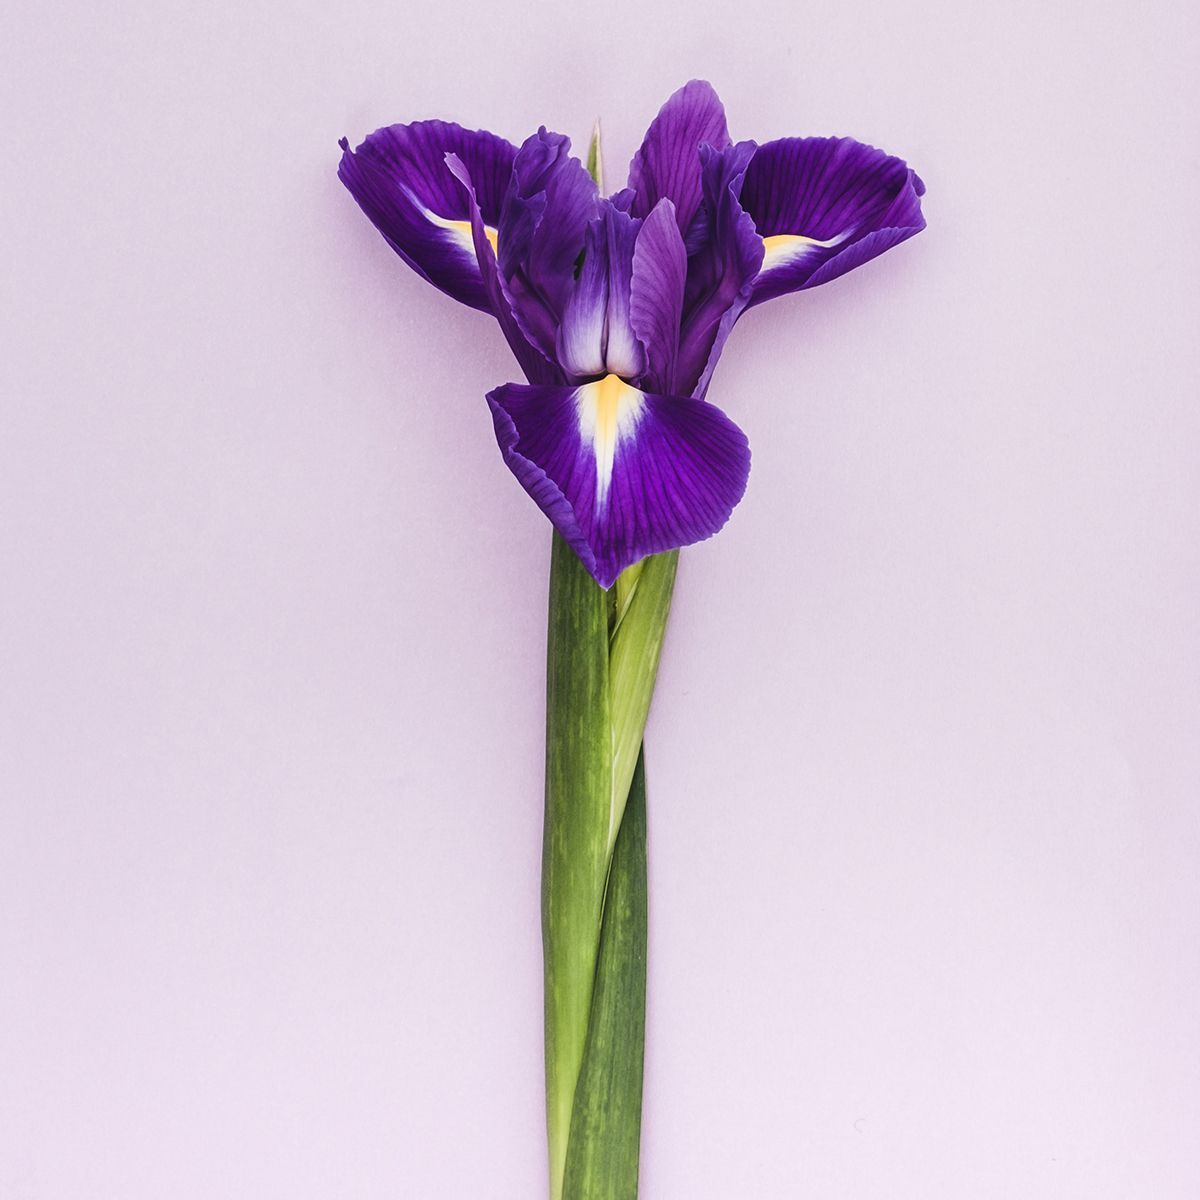 My mothers bloomers mothersbloomers twitter the celebrated connection of irises to royalty is extremely powerfulpicittervsiik8uanu izmirmasajfo